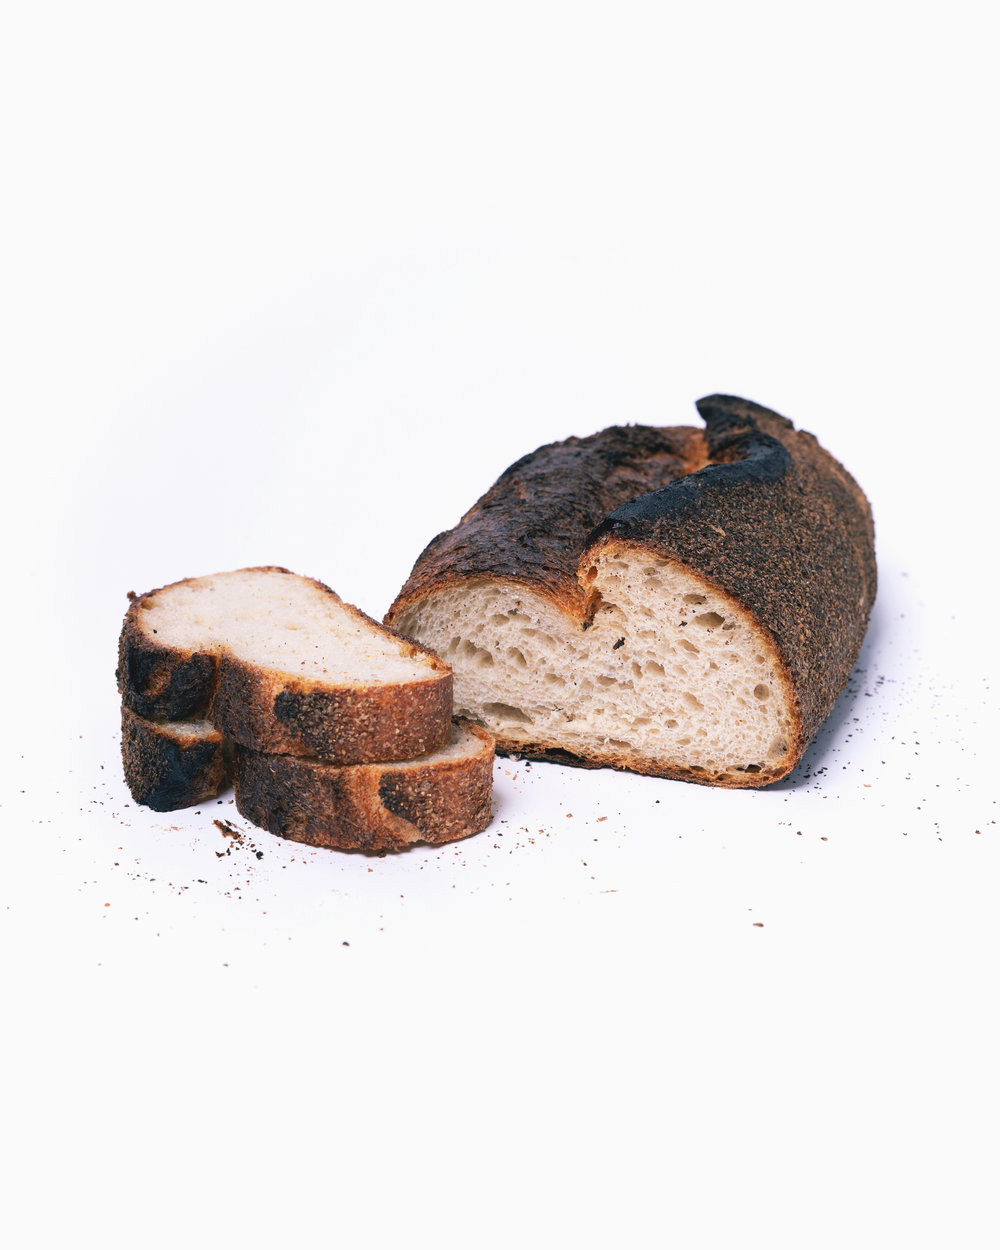 Pane da Tavola   Rustic Italian-style, charred crust with notes of coffee and cacao. Modeled after the famous bread of Genzano, Italy. (v)  Organic bread flour, spelt^, malted barley*, salt, water, yeast